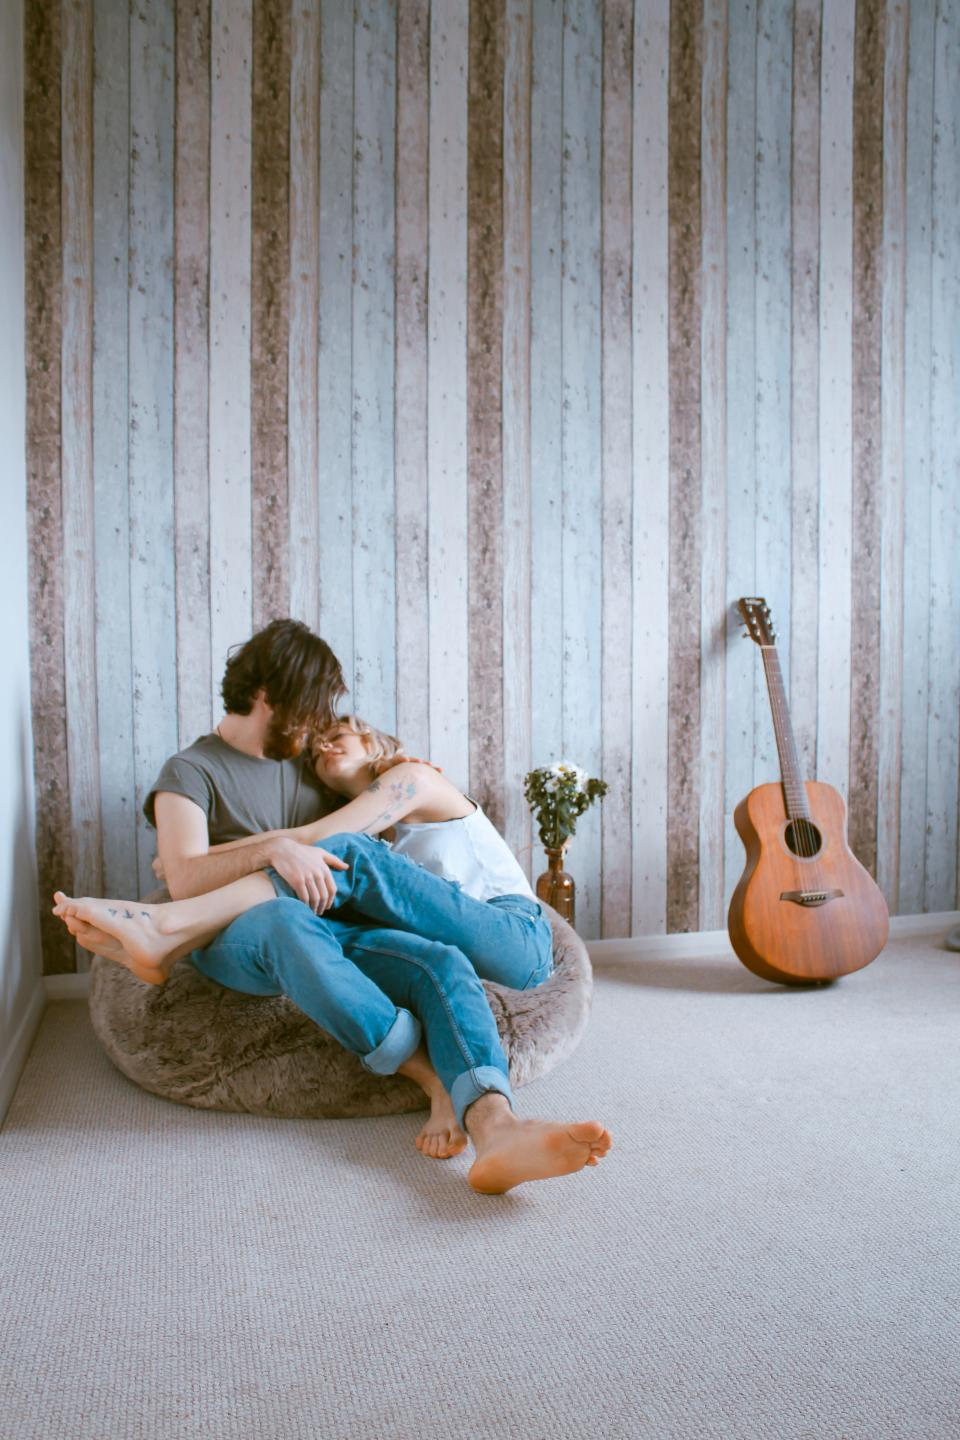 people man woman couple love hug room guitar wall